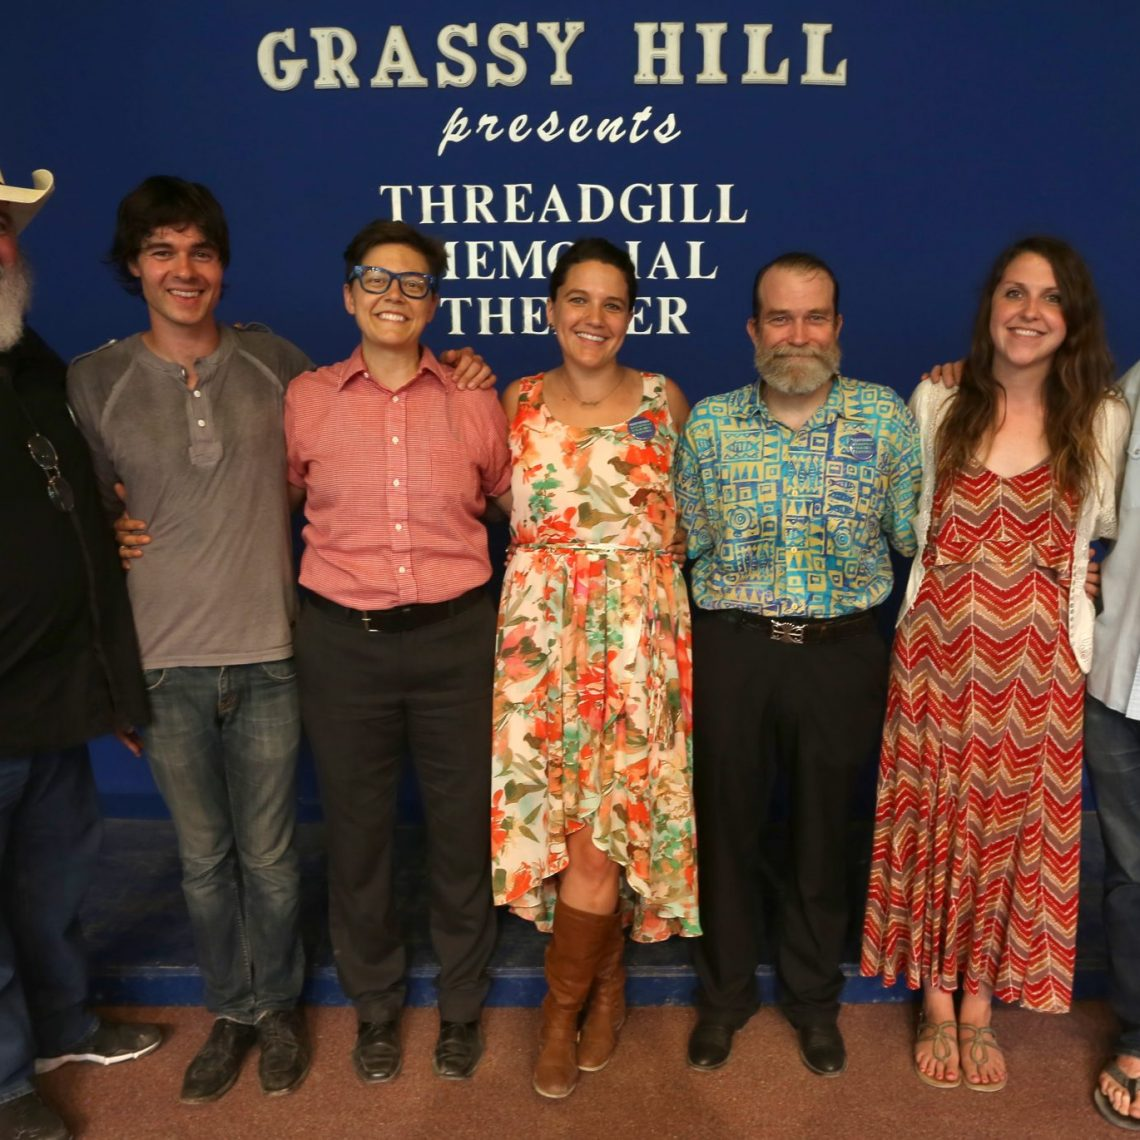 2014 Kerrville New Folk finalists. (Photo by Susan Roads)